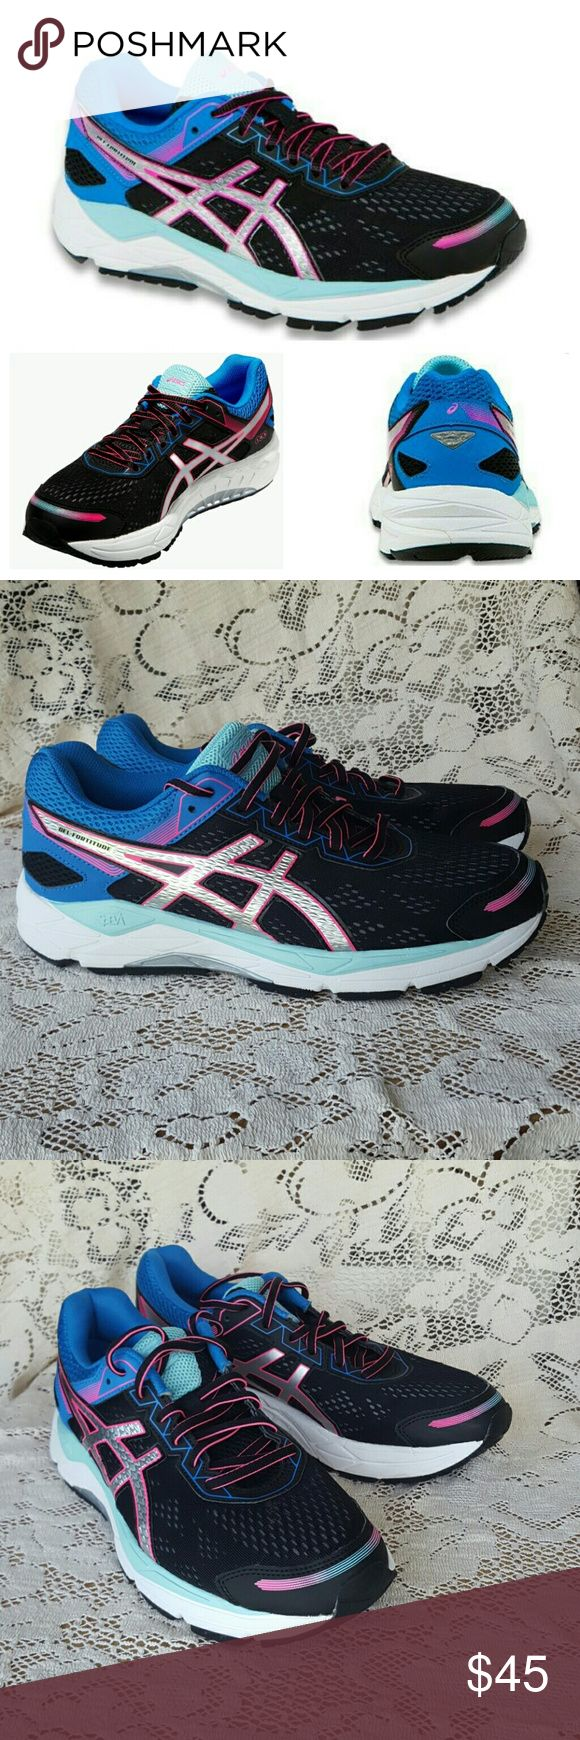 ASICS wms 10.5 Gel fortitude 7 pink blue black Asics  Gel fortitude 7 Womens size 10 1/2 Black white pink blue & aqua Excellent, nearly new condition! The only sign of wear is the ASICS logo on the inside sole of the shoe is almost worn off of each shoe bought at my local running store a few months ago for $120 & this style are still currently for sale there Smoke free home with pets Asics Shoes Athletic Shoes